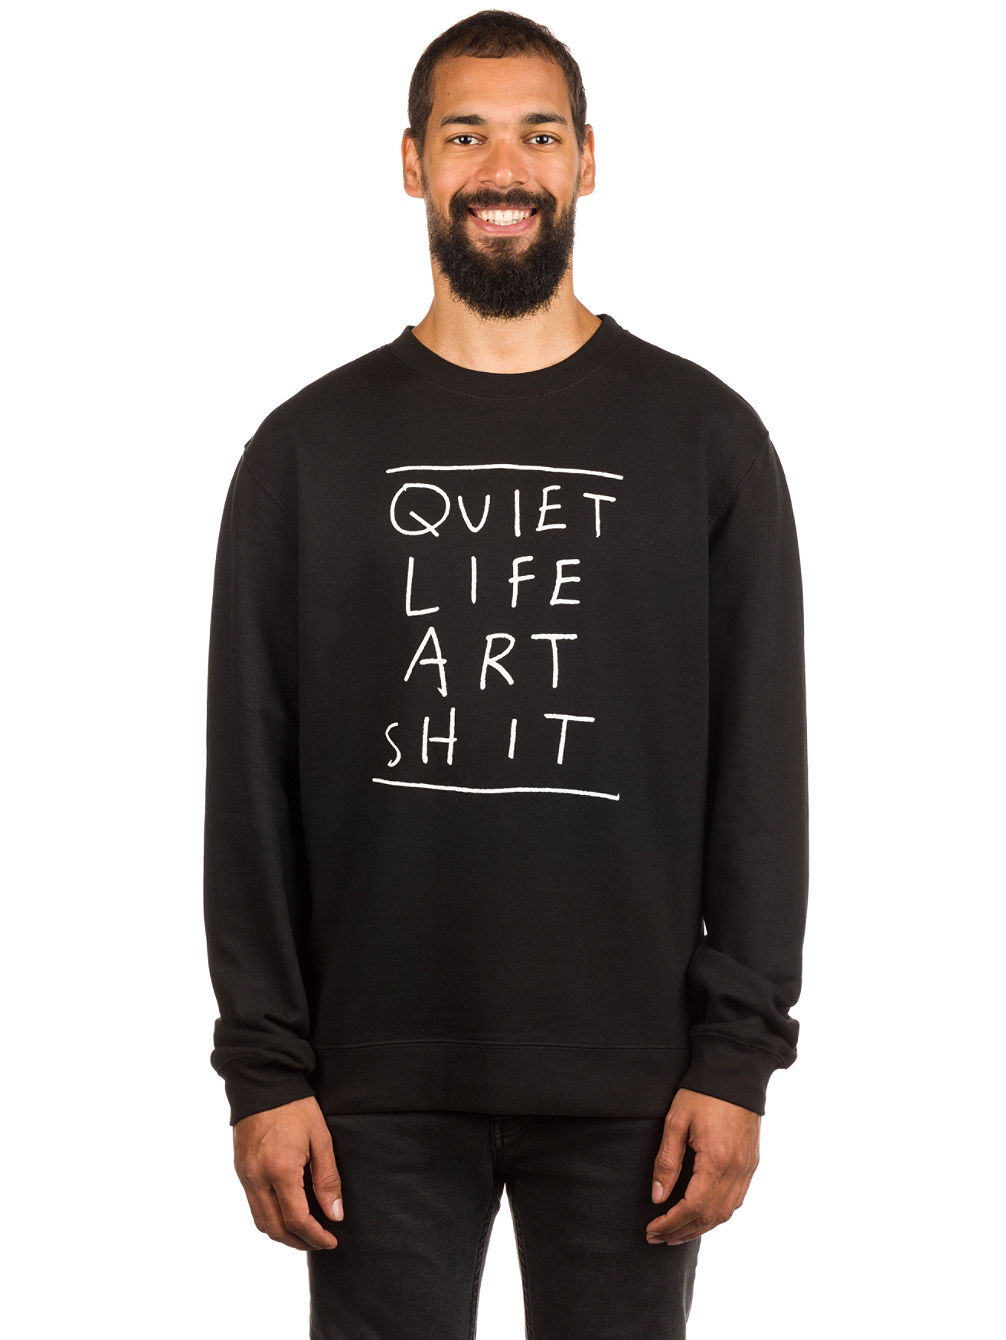 Art Shit Crew Neck Sweater